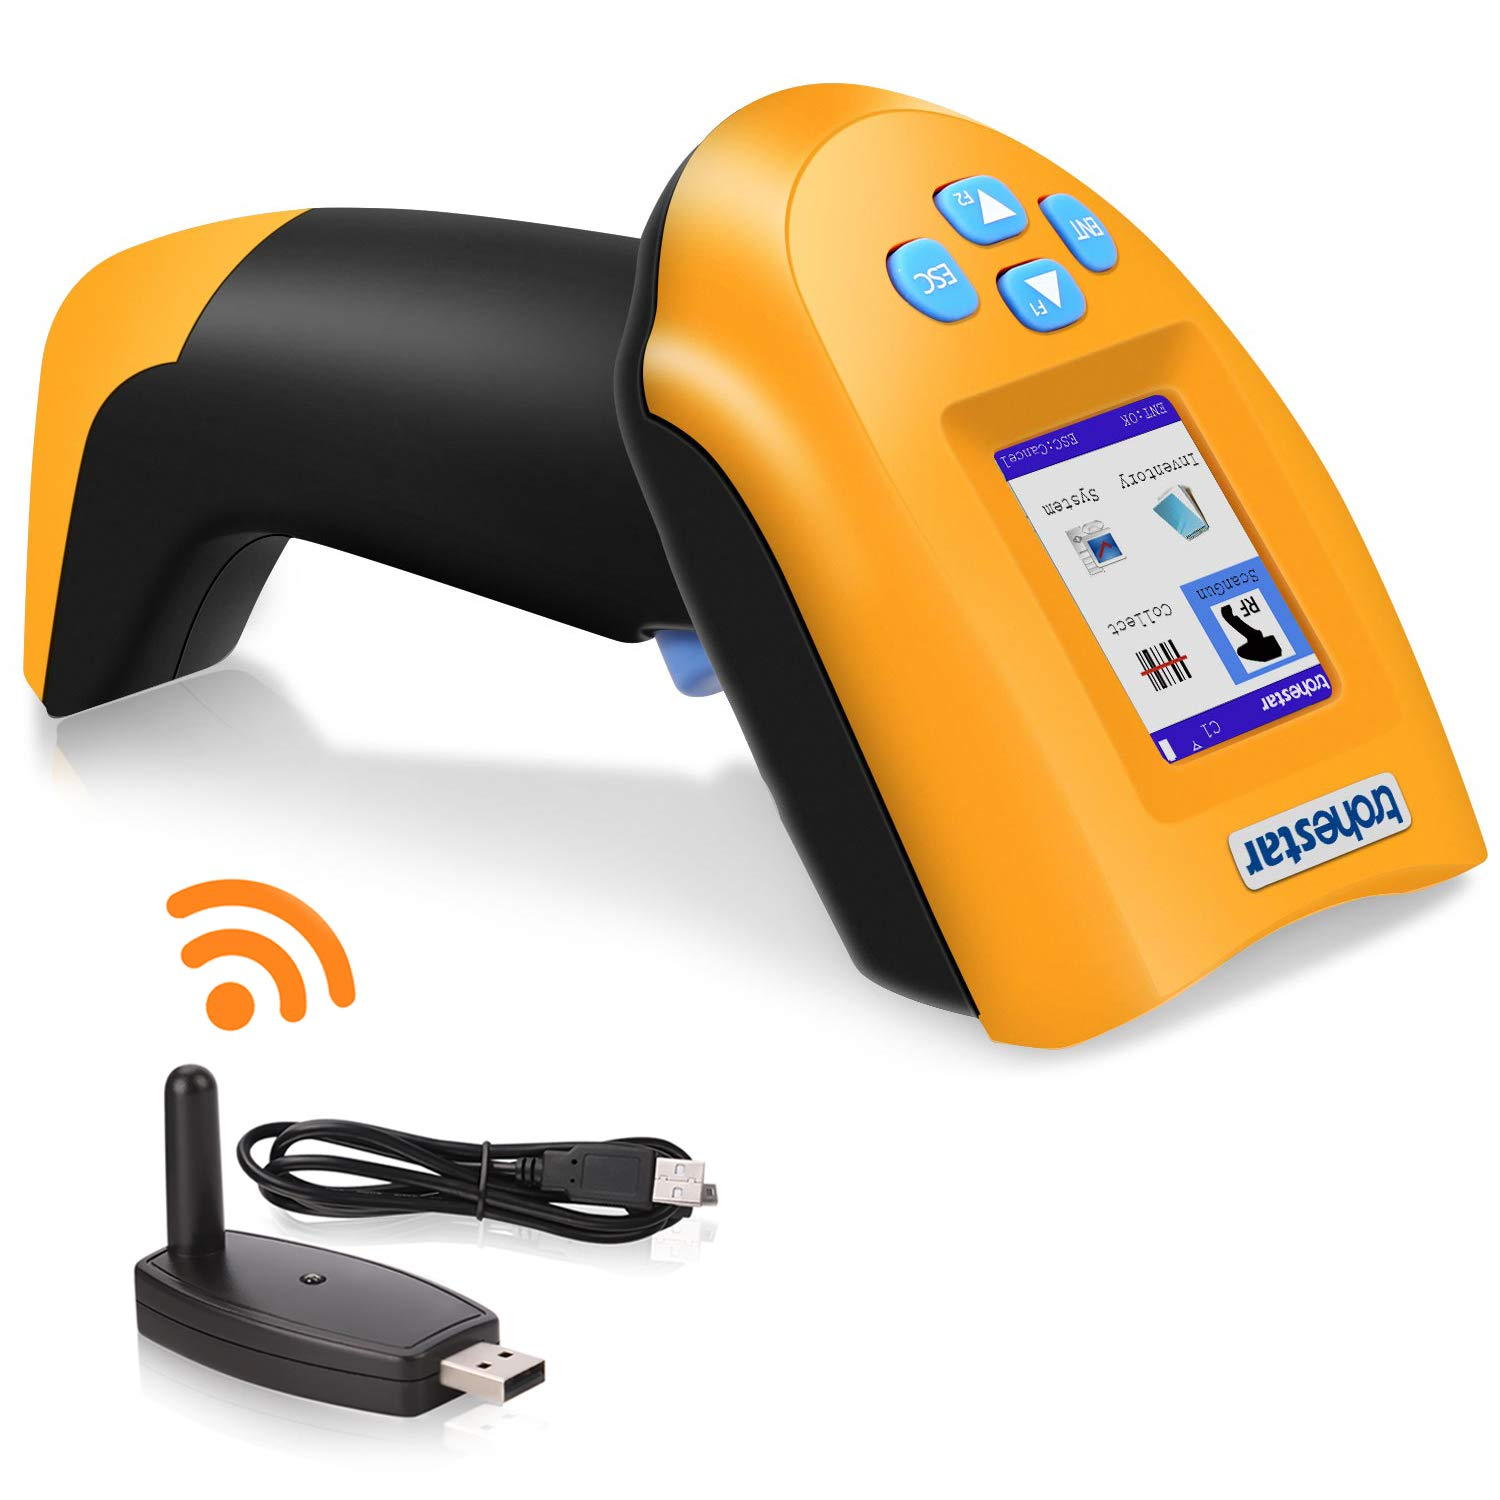 TroheStar 433Mhz Wireless Barcode Scanner, 1D USB Handheld Bar Code Reader Laser Cordless Automatic Bar Code Scanner and Collector Portable Data Terminal Inventory Device with TFT Color LCD Screen BS2203-CH